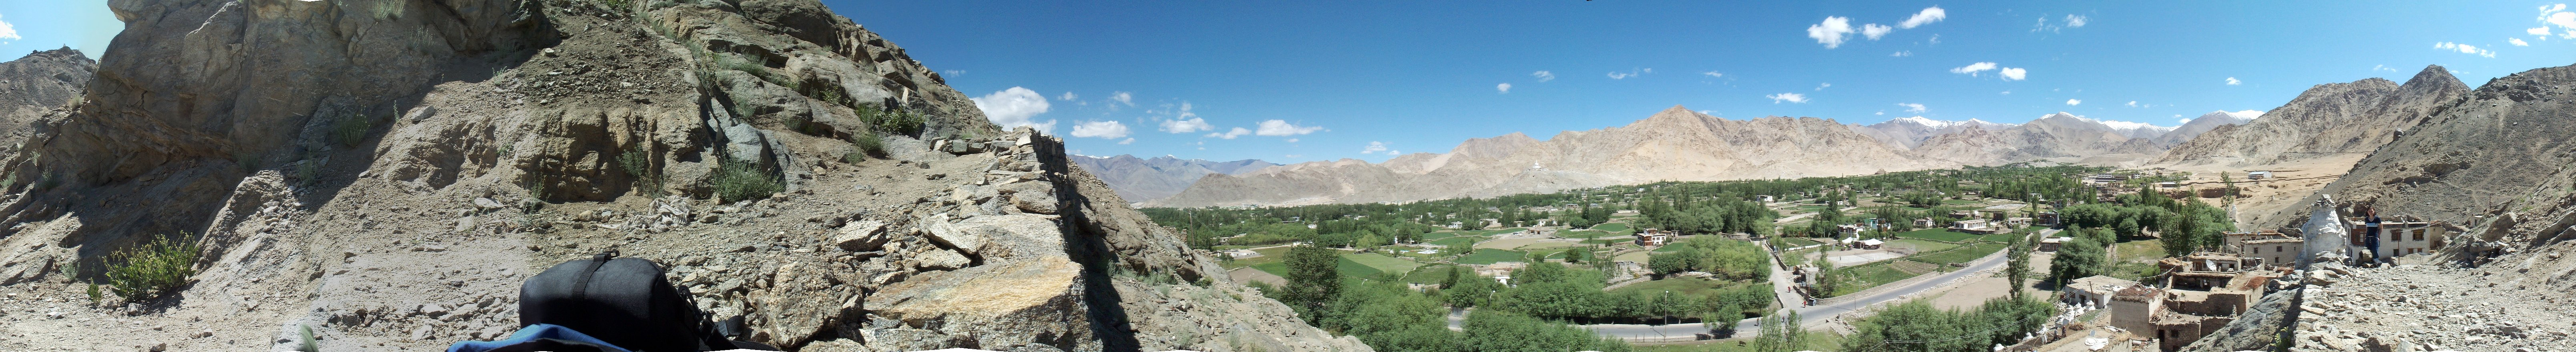 From Leh Palace, overlooking Leh